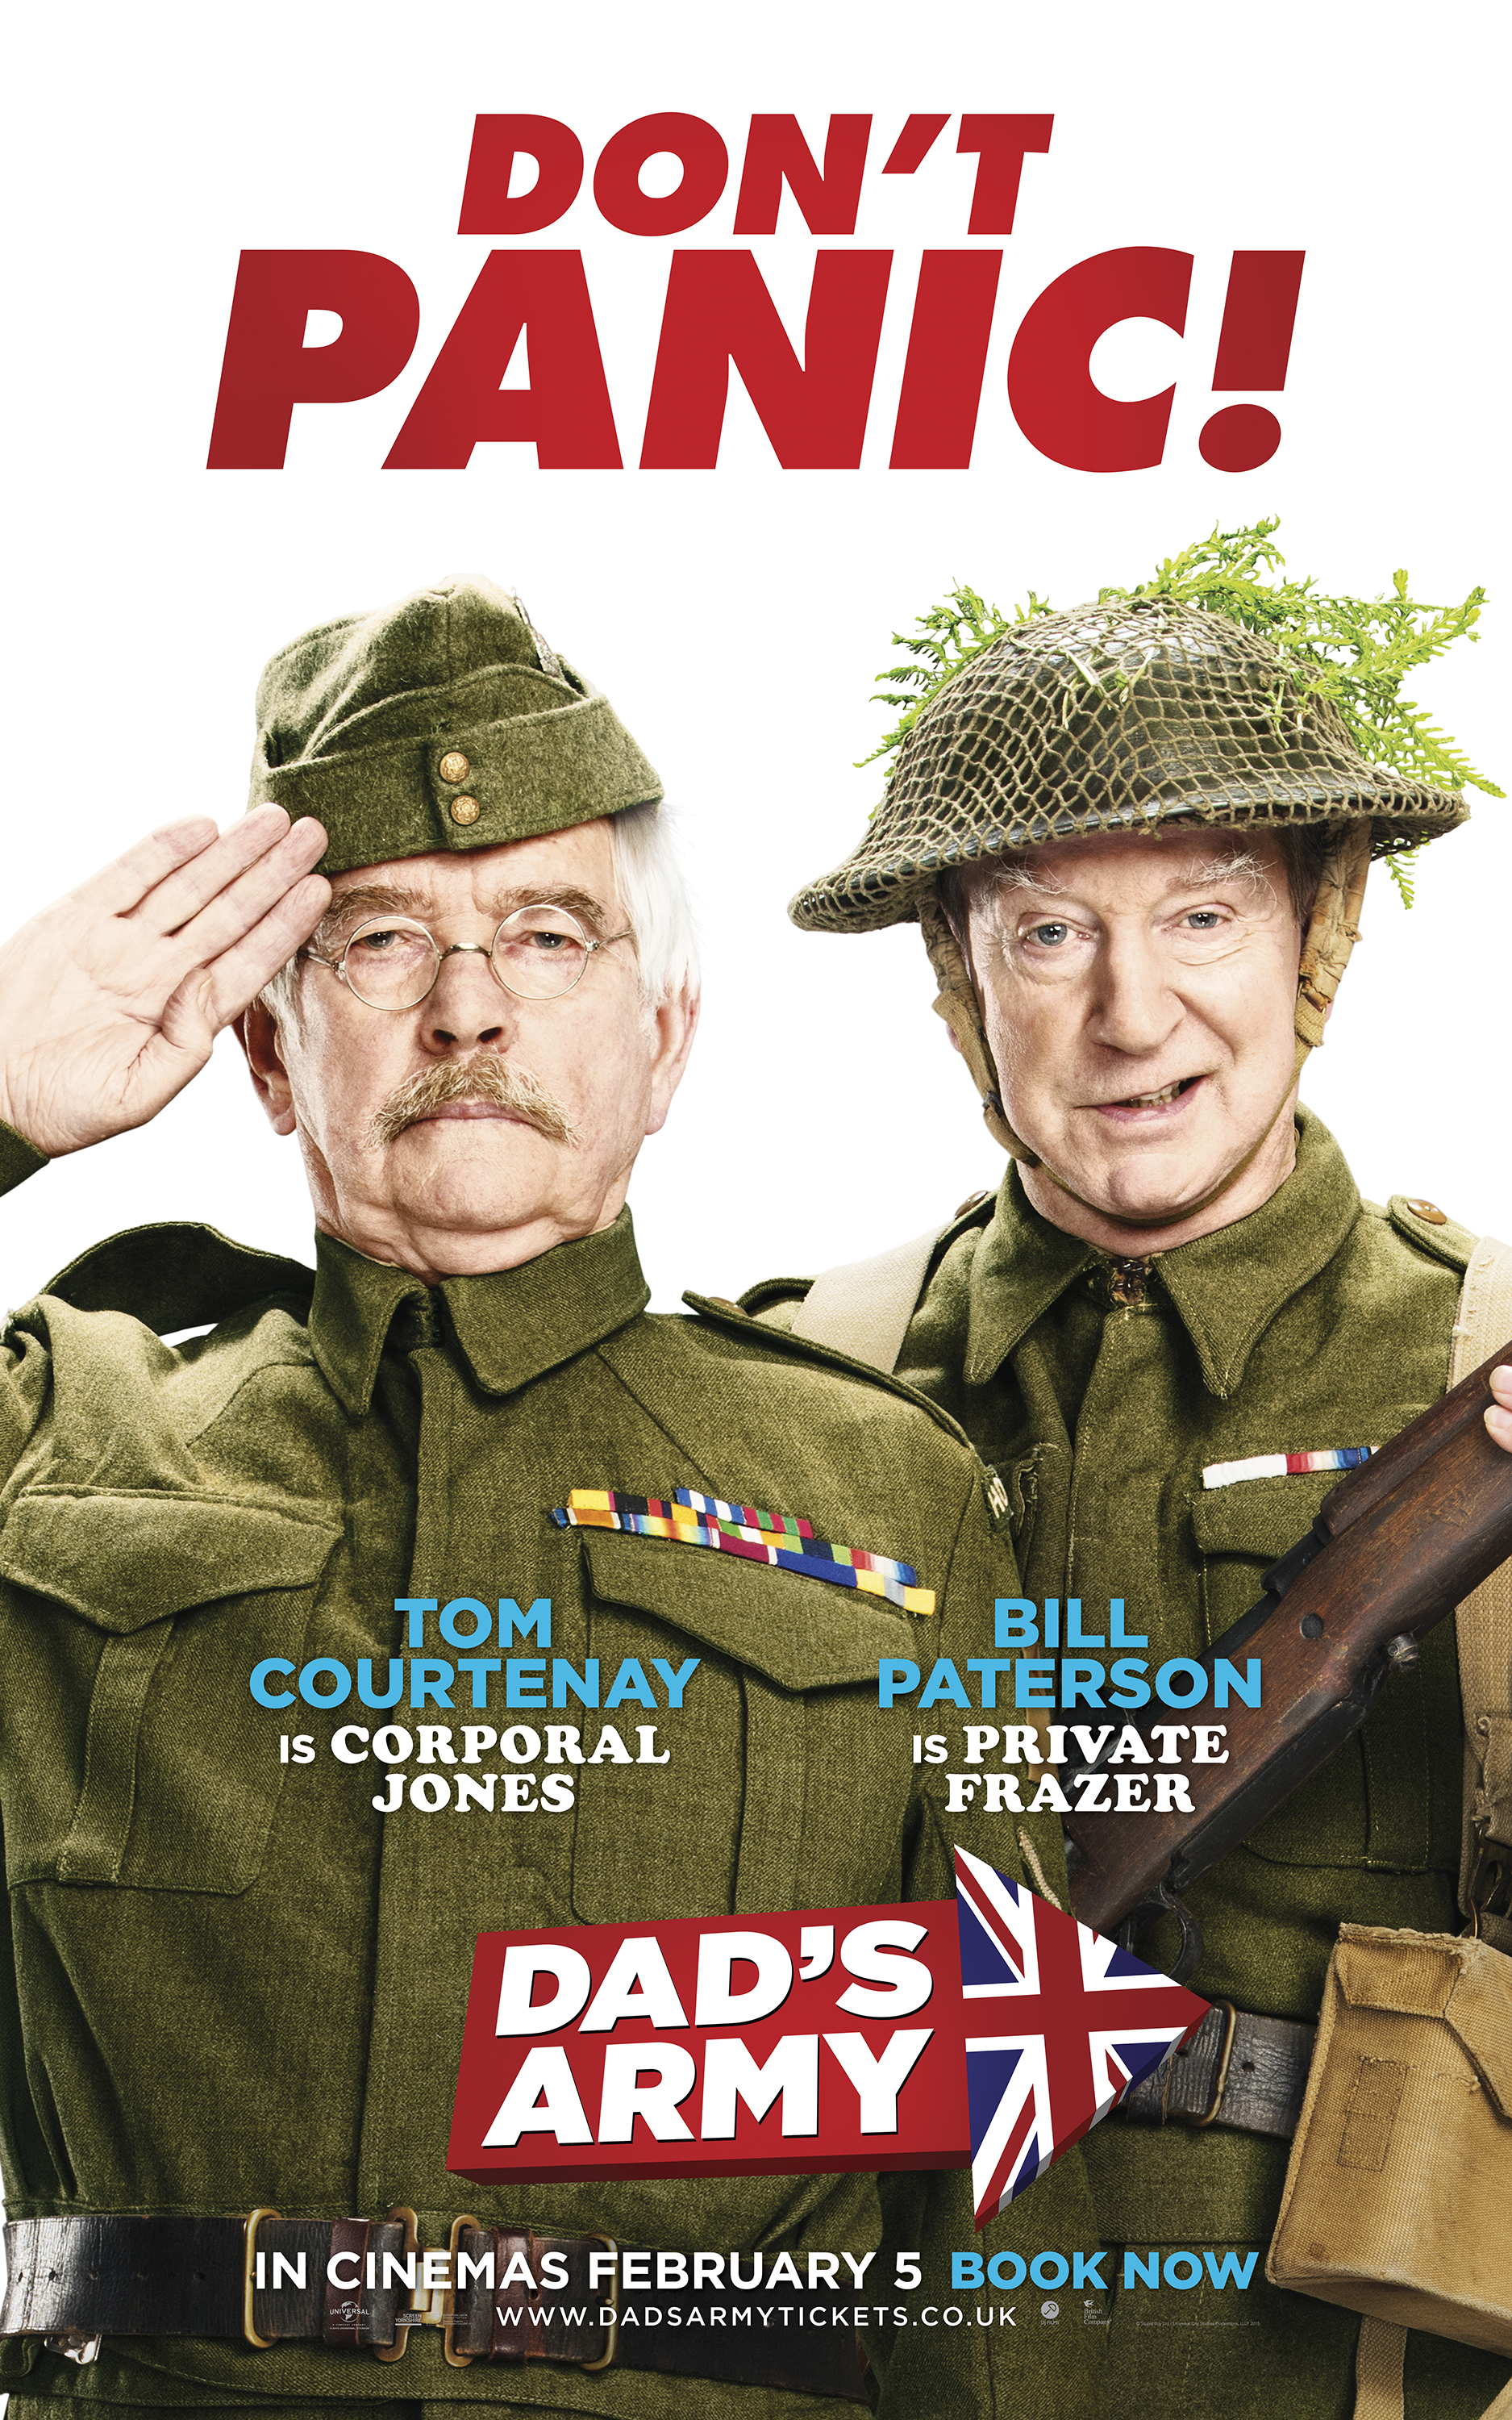 Courtenay and Paterson_DadsArmy